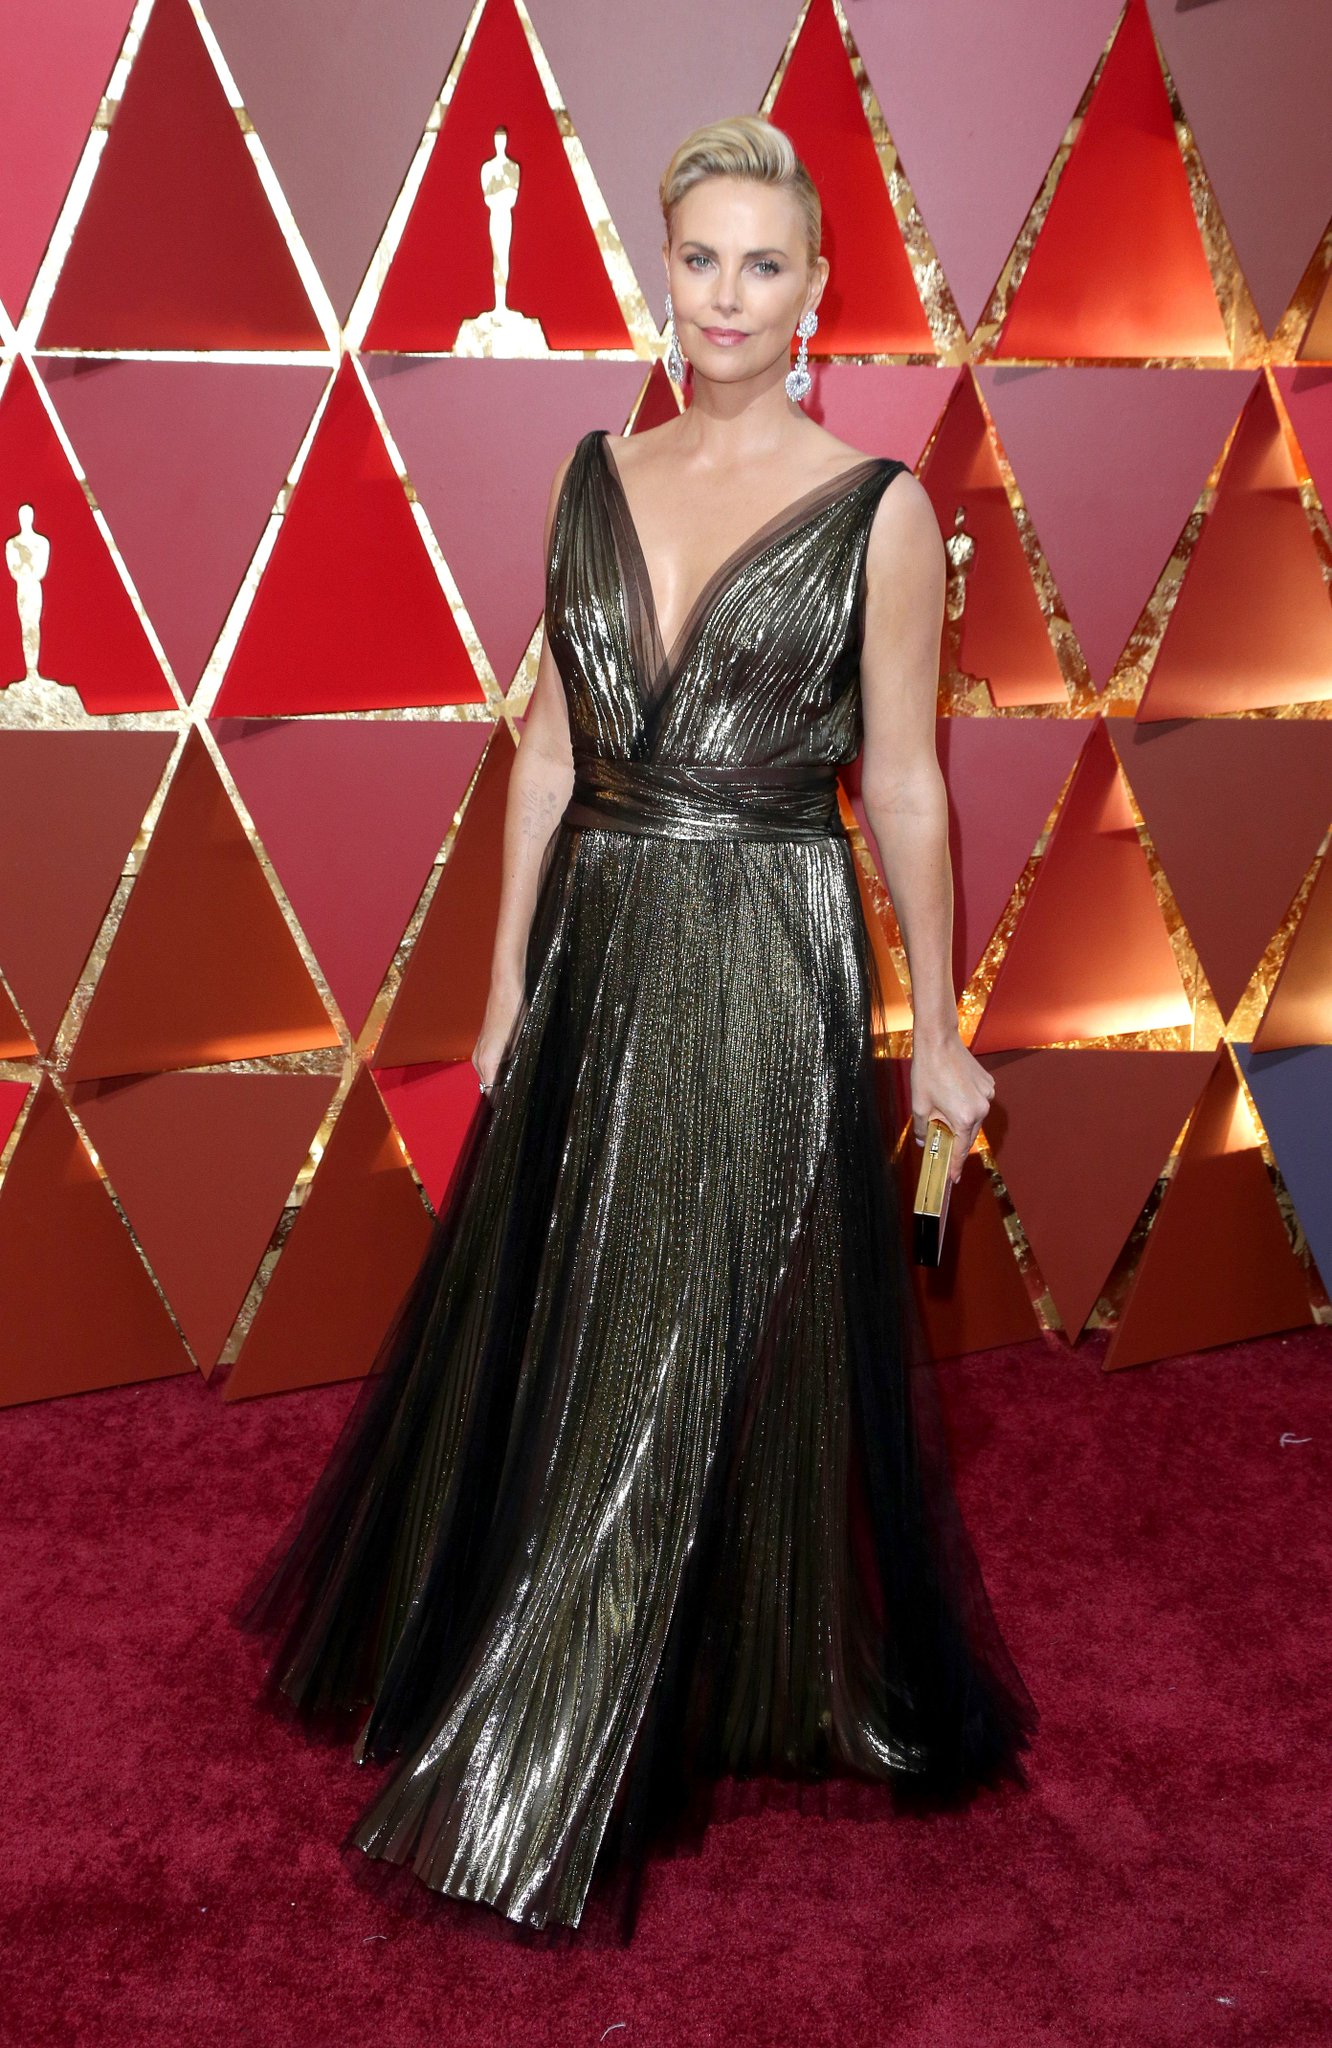 Charlize Theron (@CharlizeAfrica) looks glamorous in Dior at the #Oscars https://t.co/CE9NWs6paT https://t.co/LVpx7kYlC5